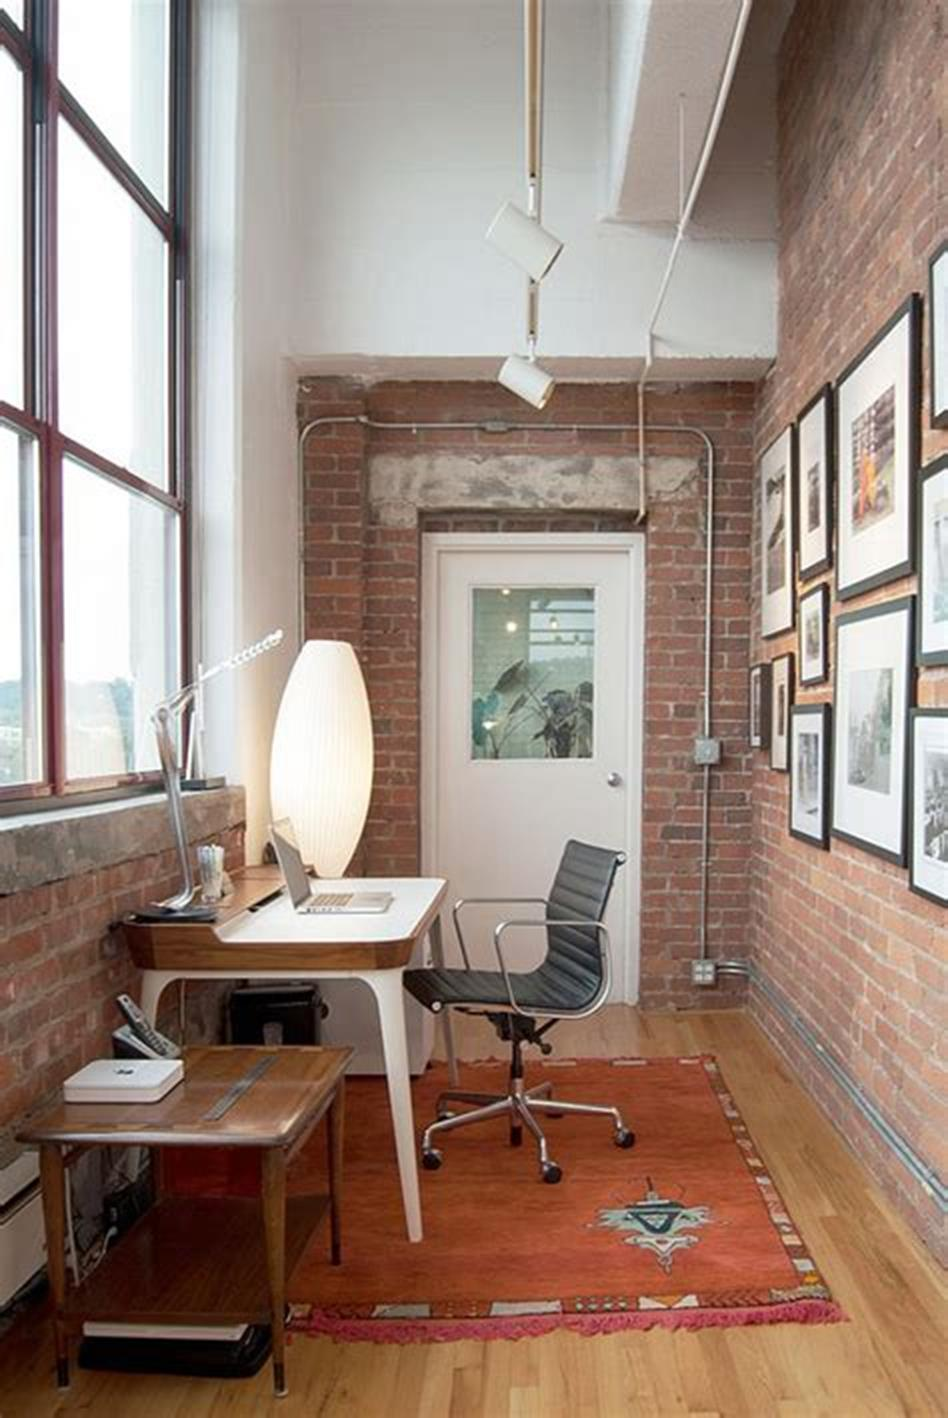 50 Best Small Space Office Decorating Ideas On a Budget 2019 35